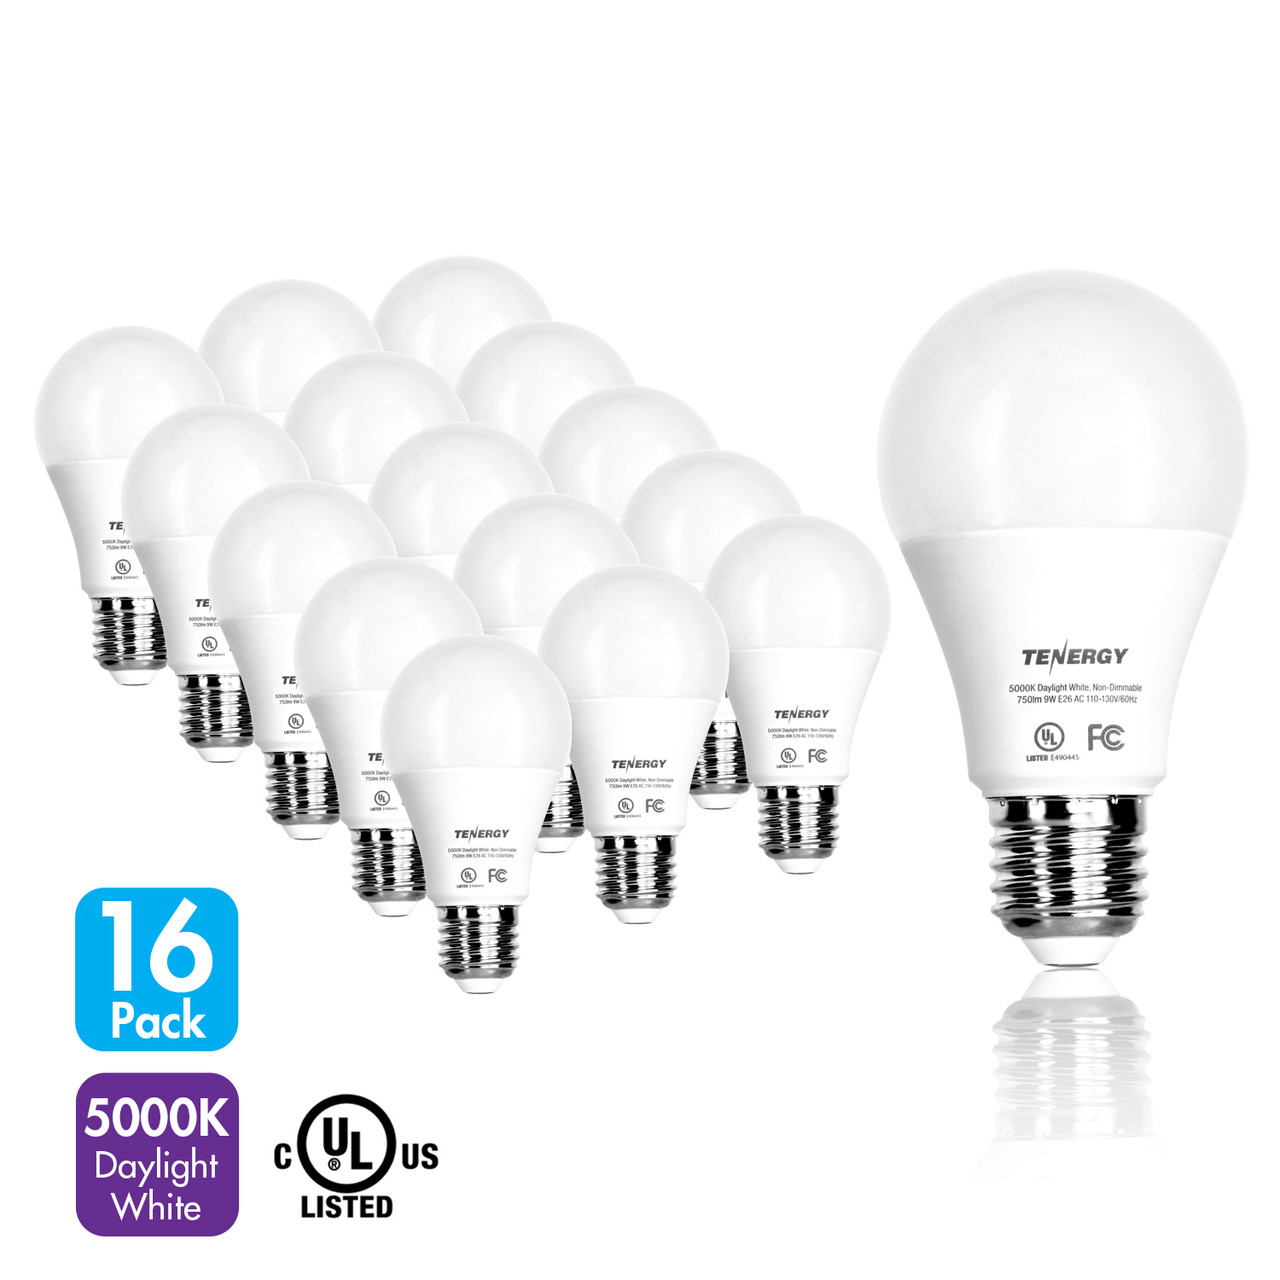 9W LED Bulb 5000K (Daylight White)